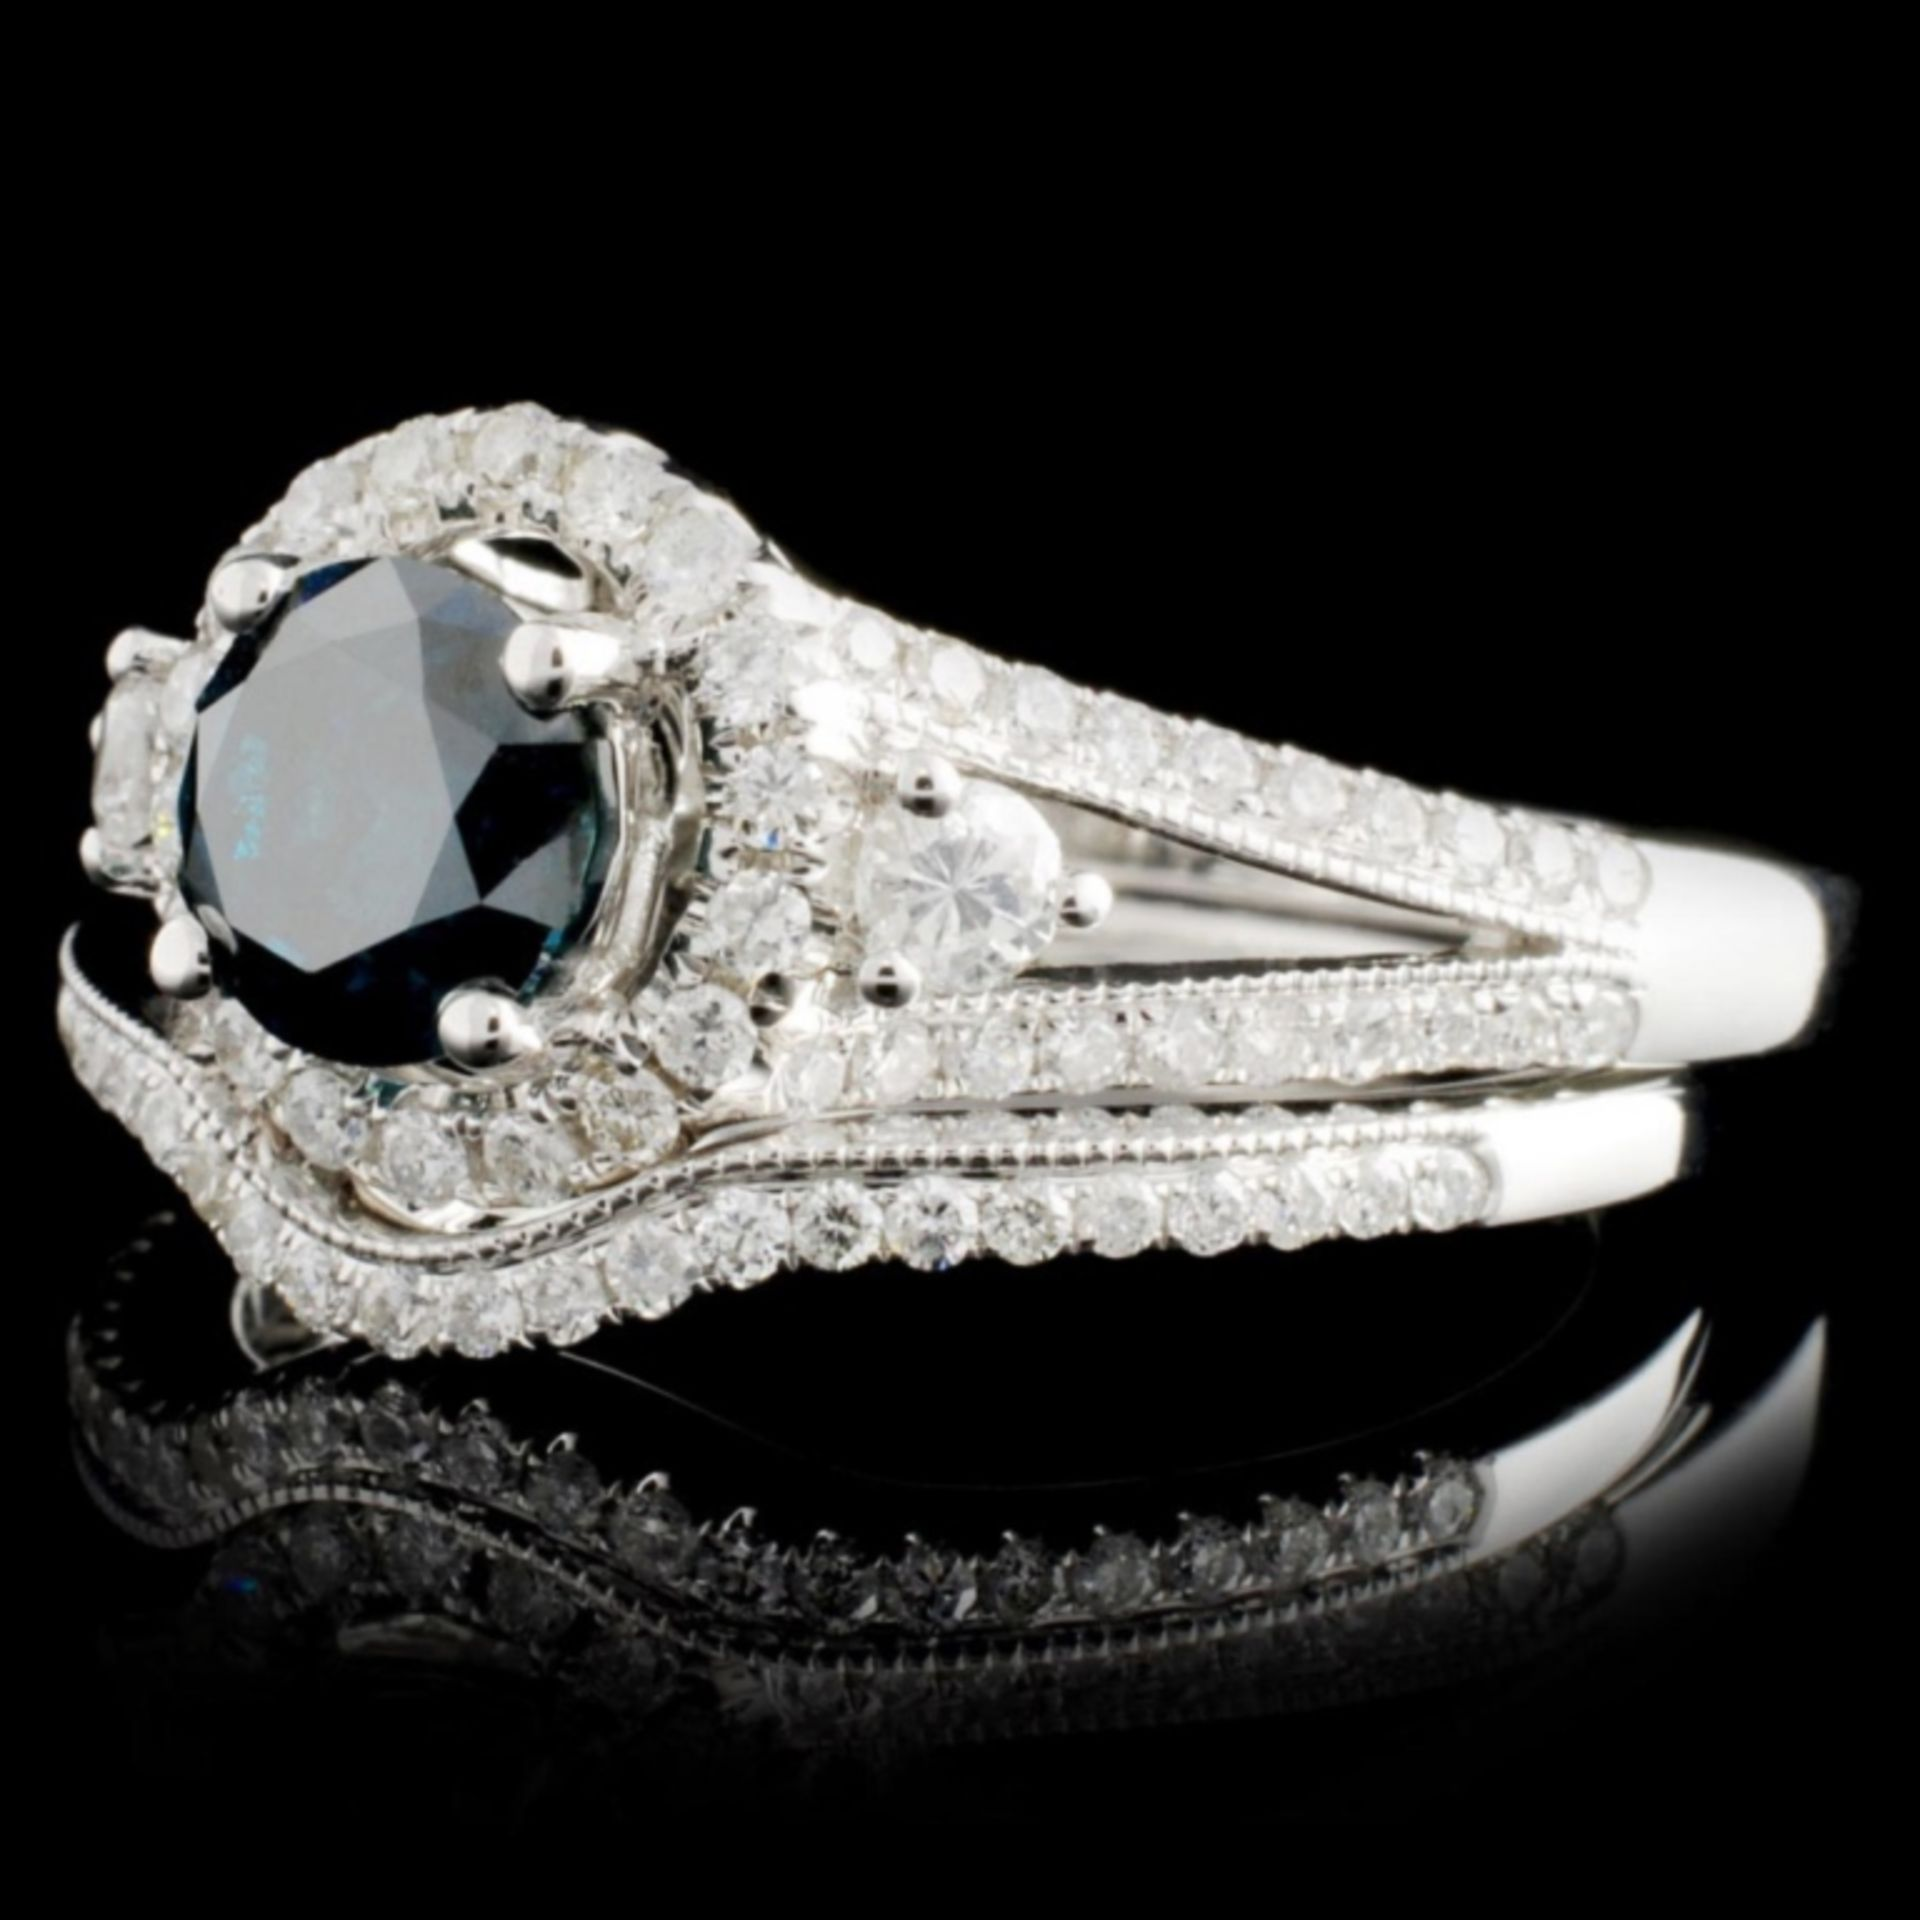 18K Gold 1.47ctw Fancy Color Diamond Ring - Image 2 of 5